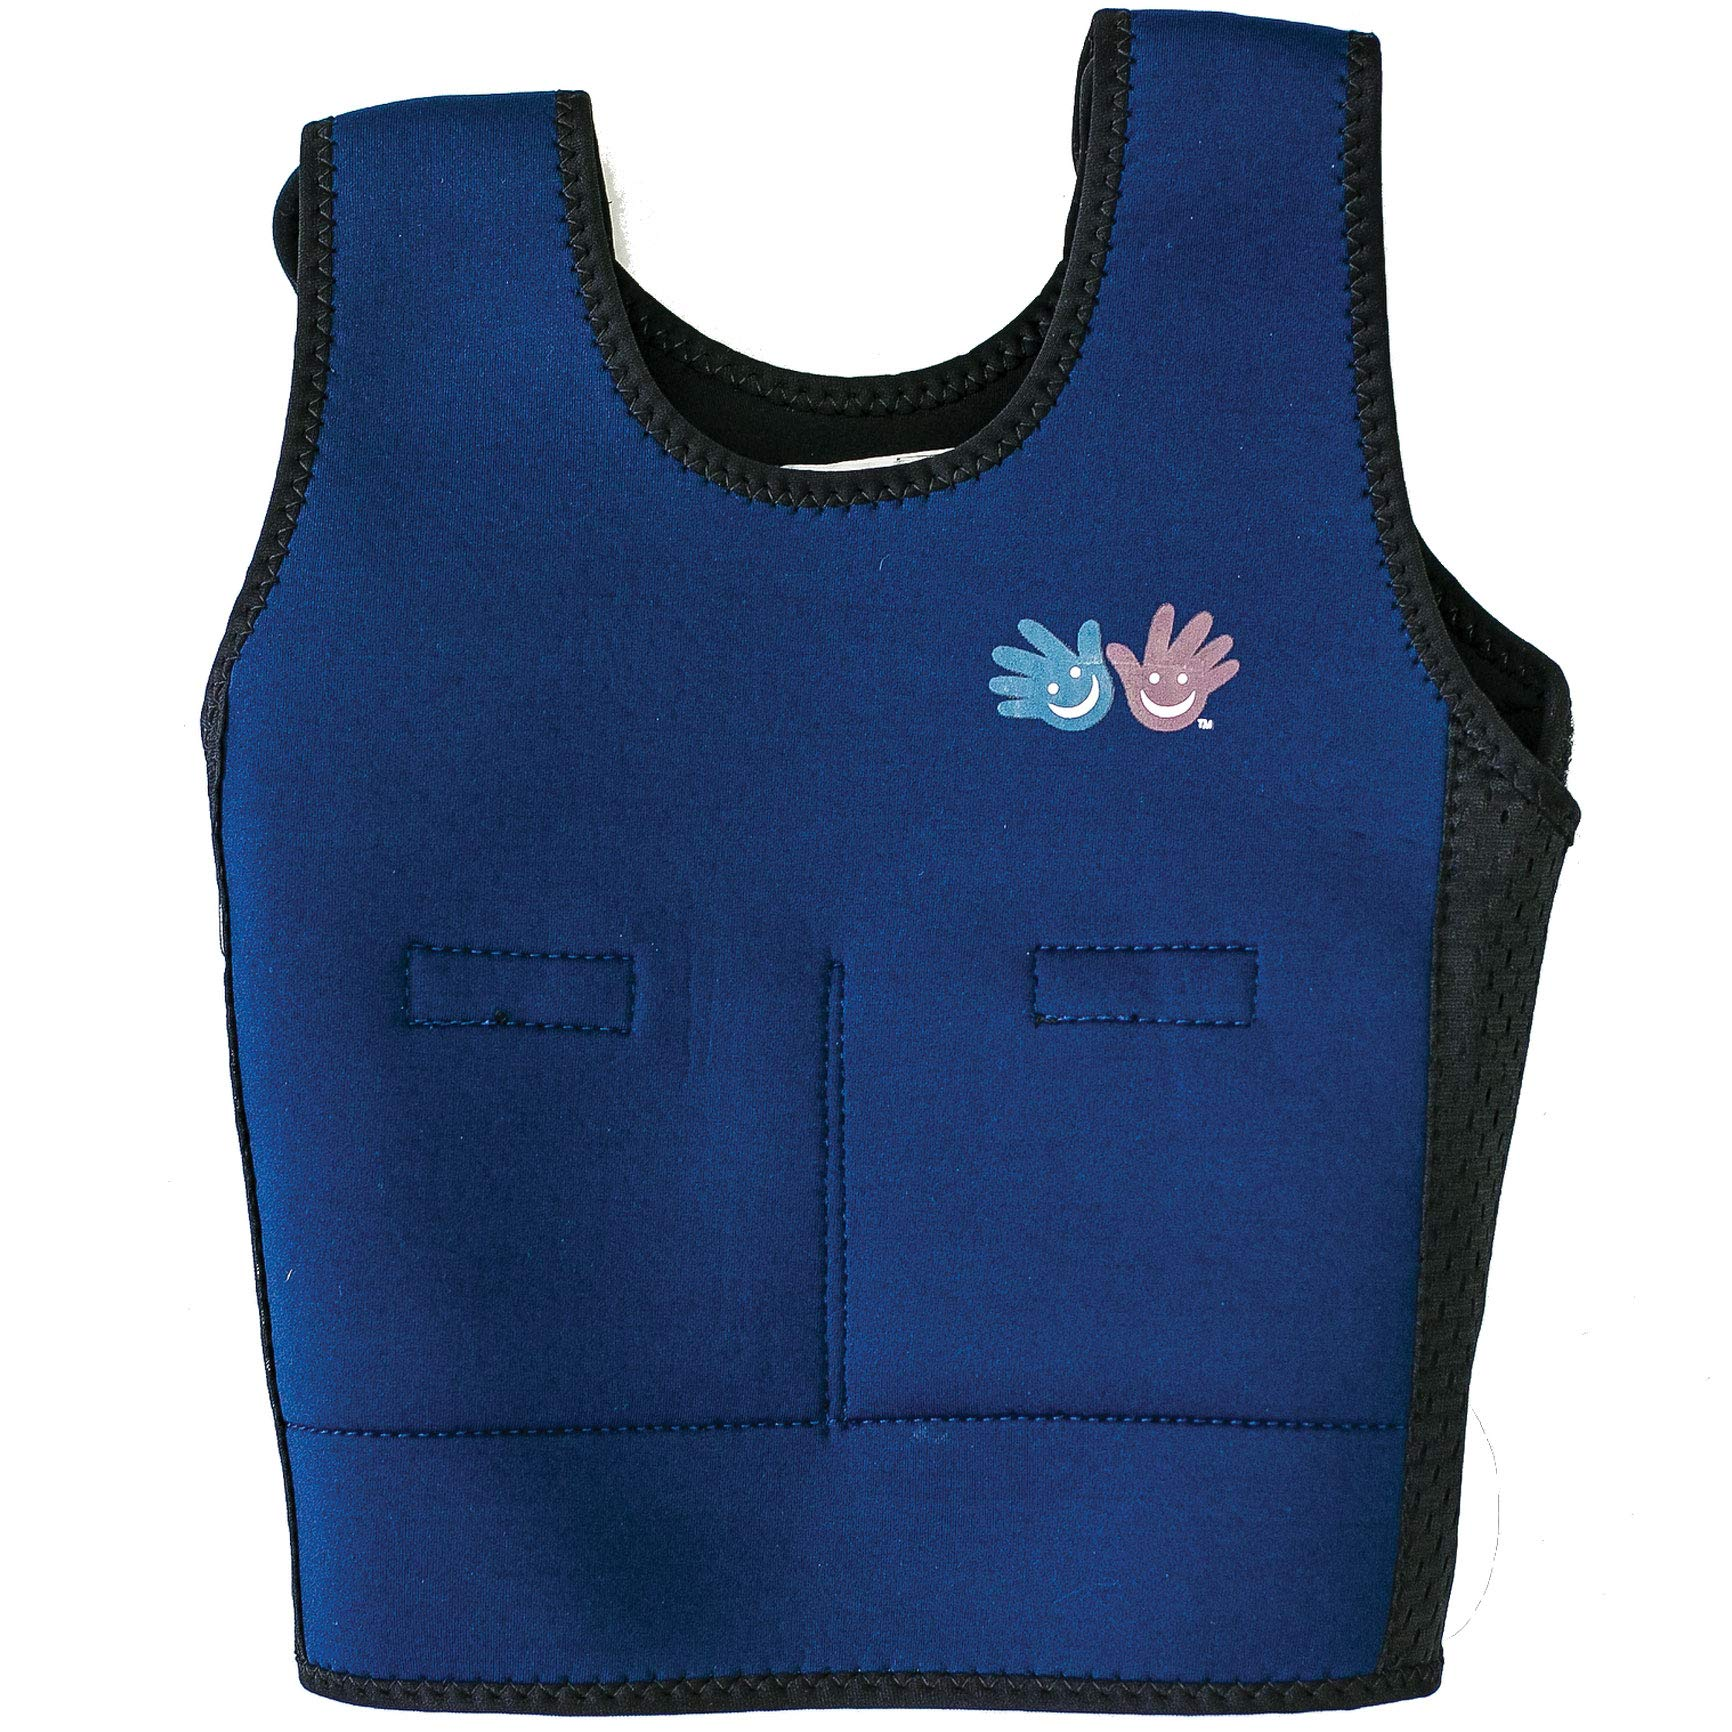 Fun and Function's Blue Weighted Compression Vest - Small (5-8) - Helps with Mood & Attention, Sensory Over Responding, Sensory Seeking, Travel Issues by Fun and Function